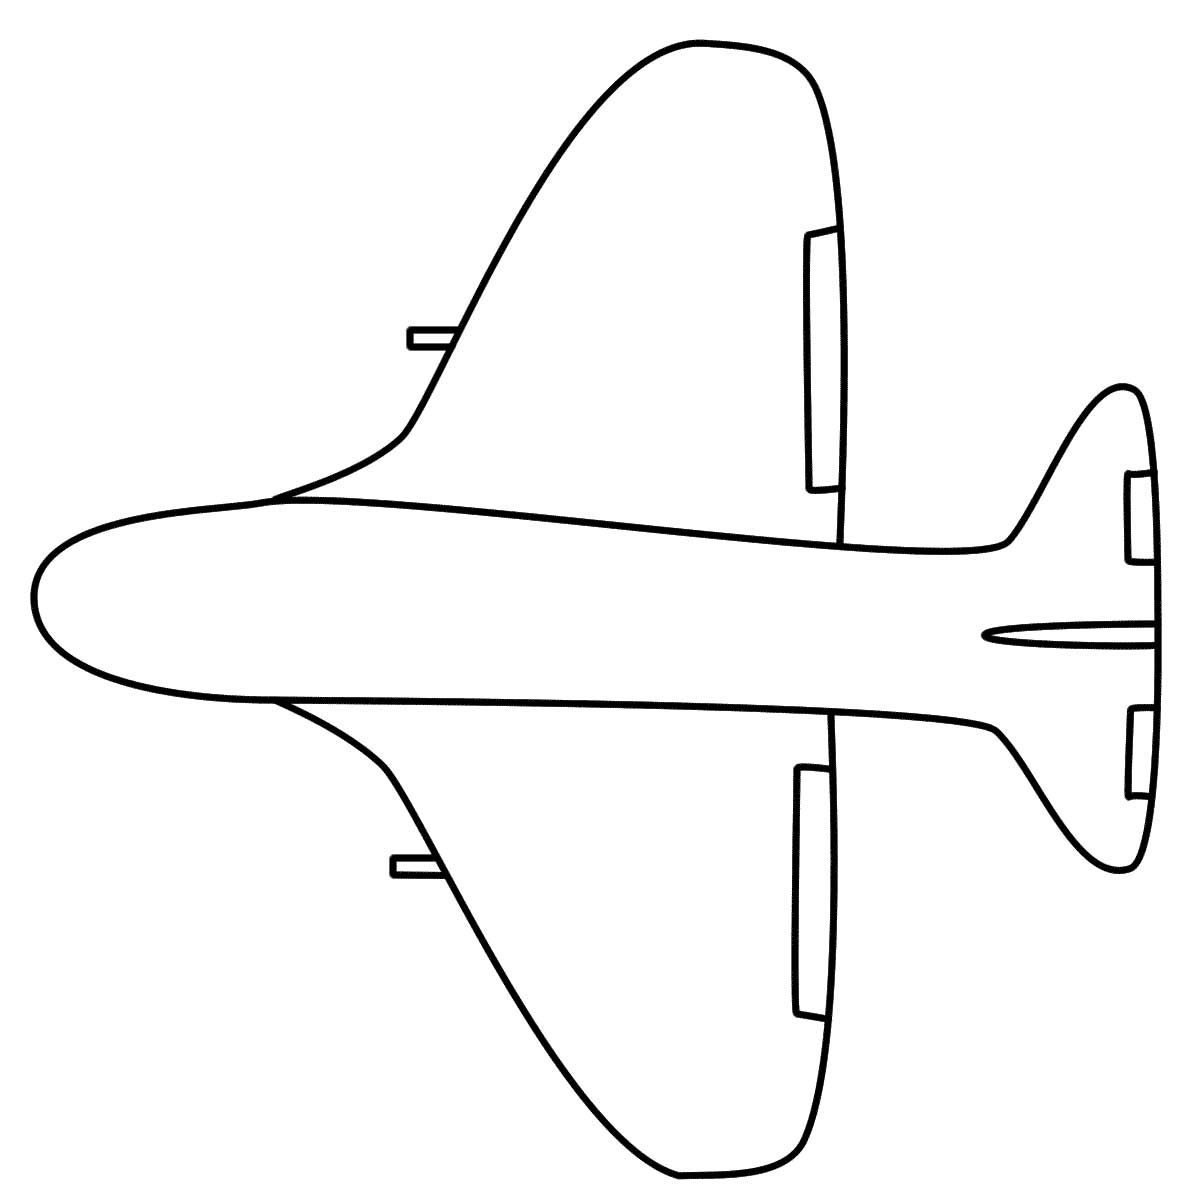 Coloring page 747 - Download Simple Airplane Coloring Page